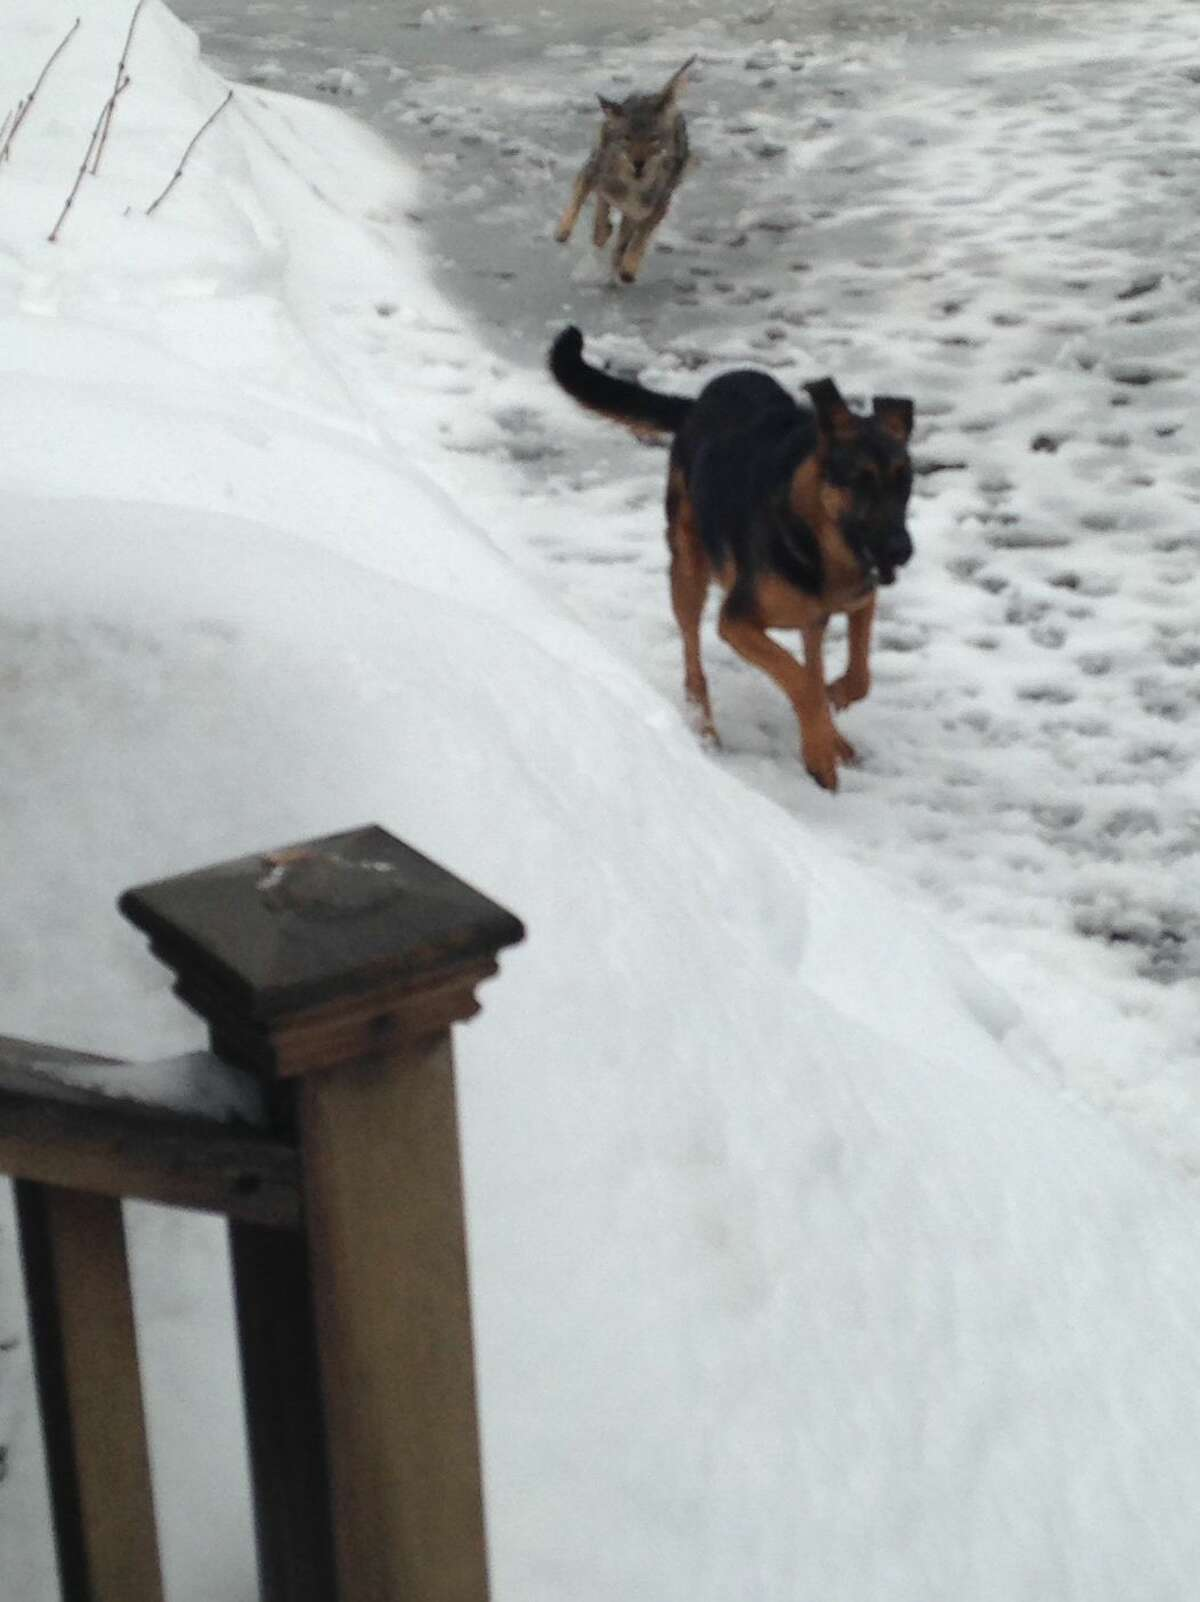 A Stamford homeowner captured this photo, provided by the Stamford Police Department, of a wild coyote chasing his dog.